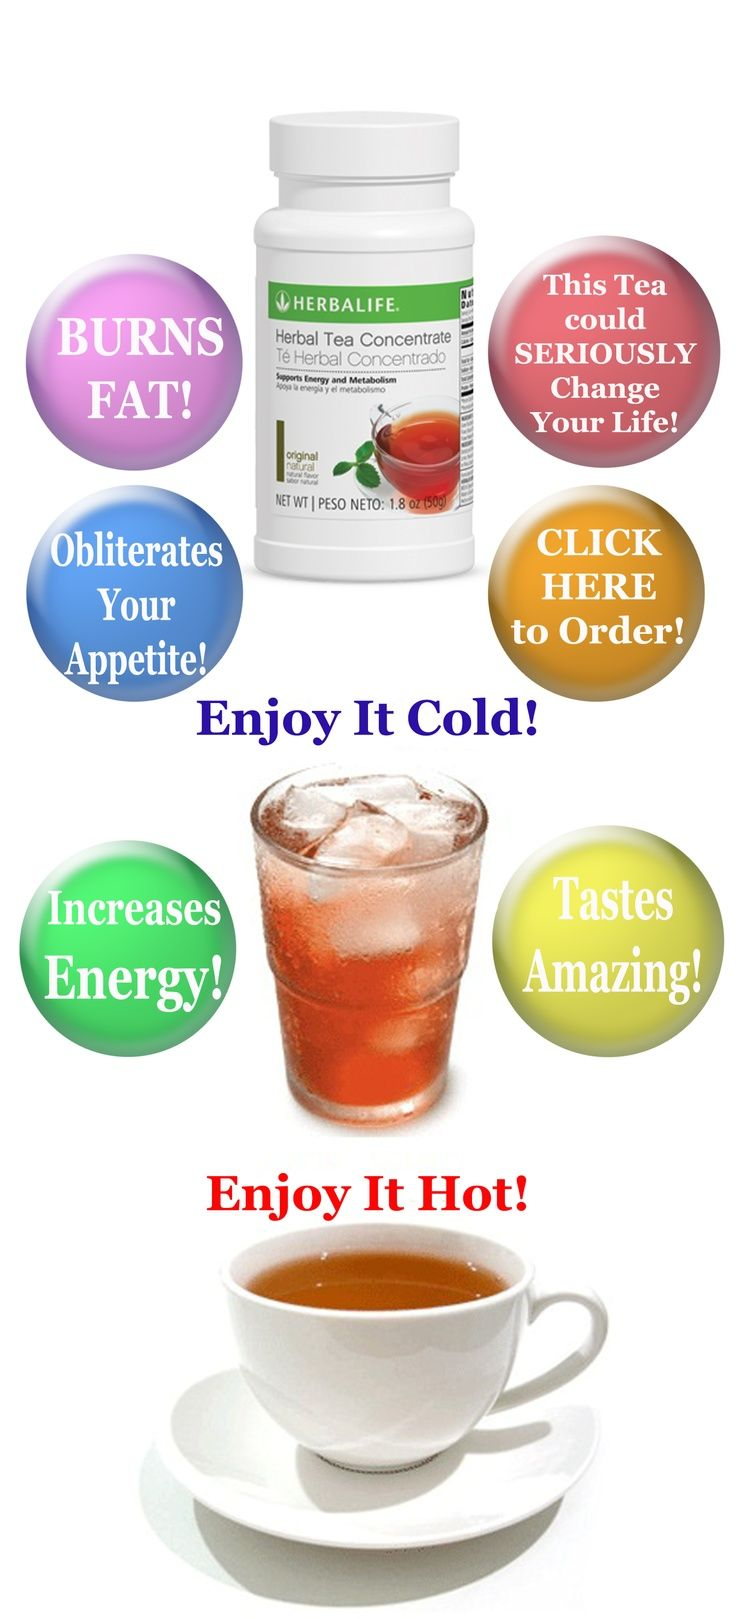 Herbalife Herbal Tea Beverage, based on GREEN TEA: Burns 80 Calories per 1/2 tsp ~ Boosts Metabolism ~ for Amazing Energy!